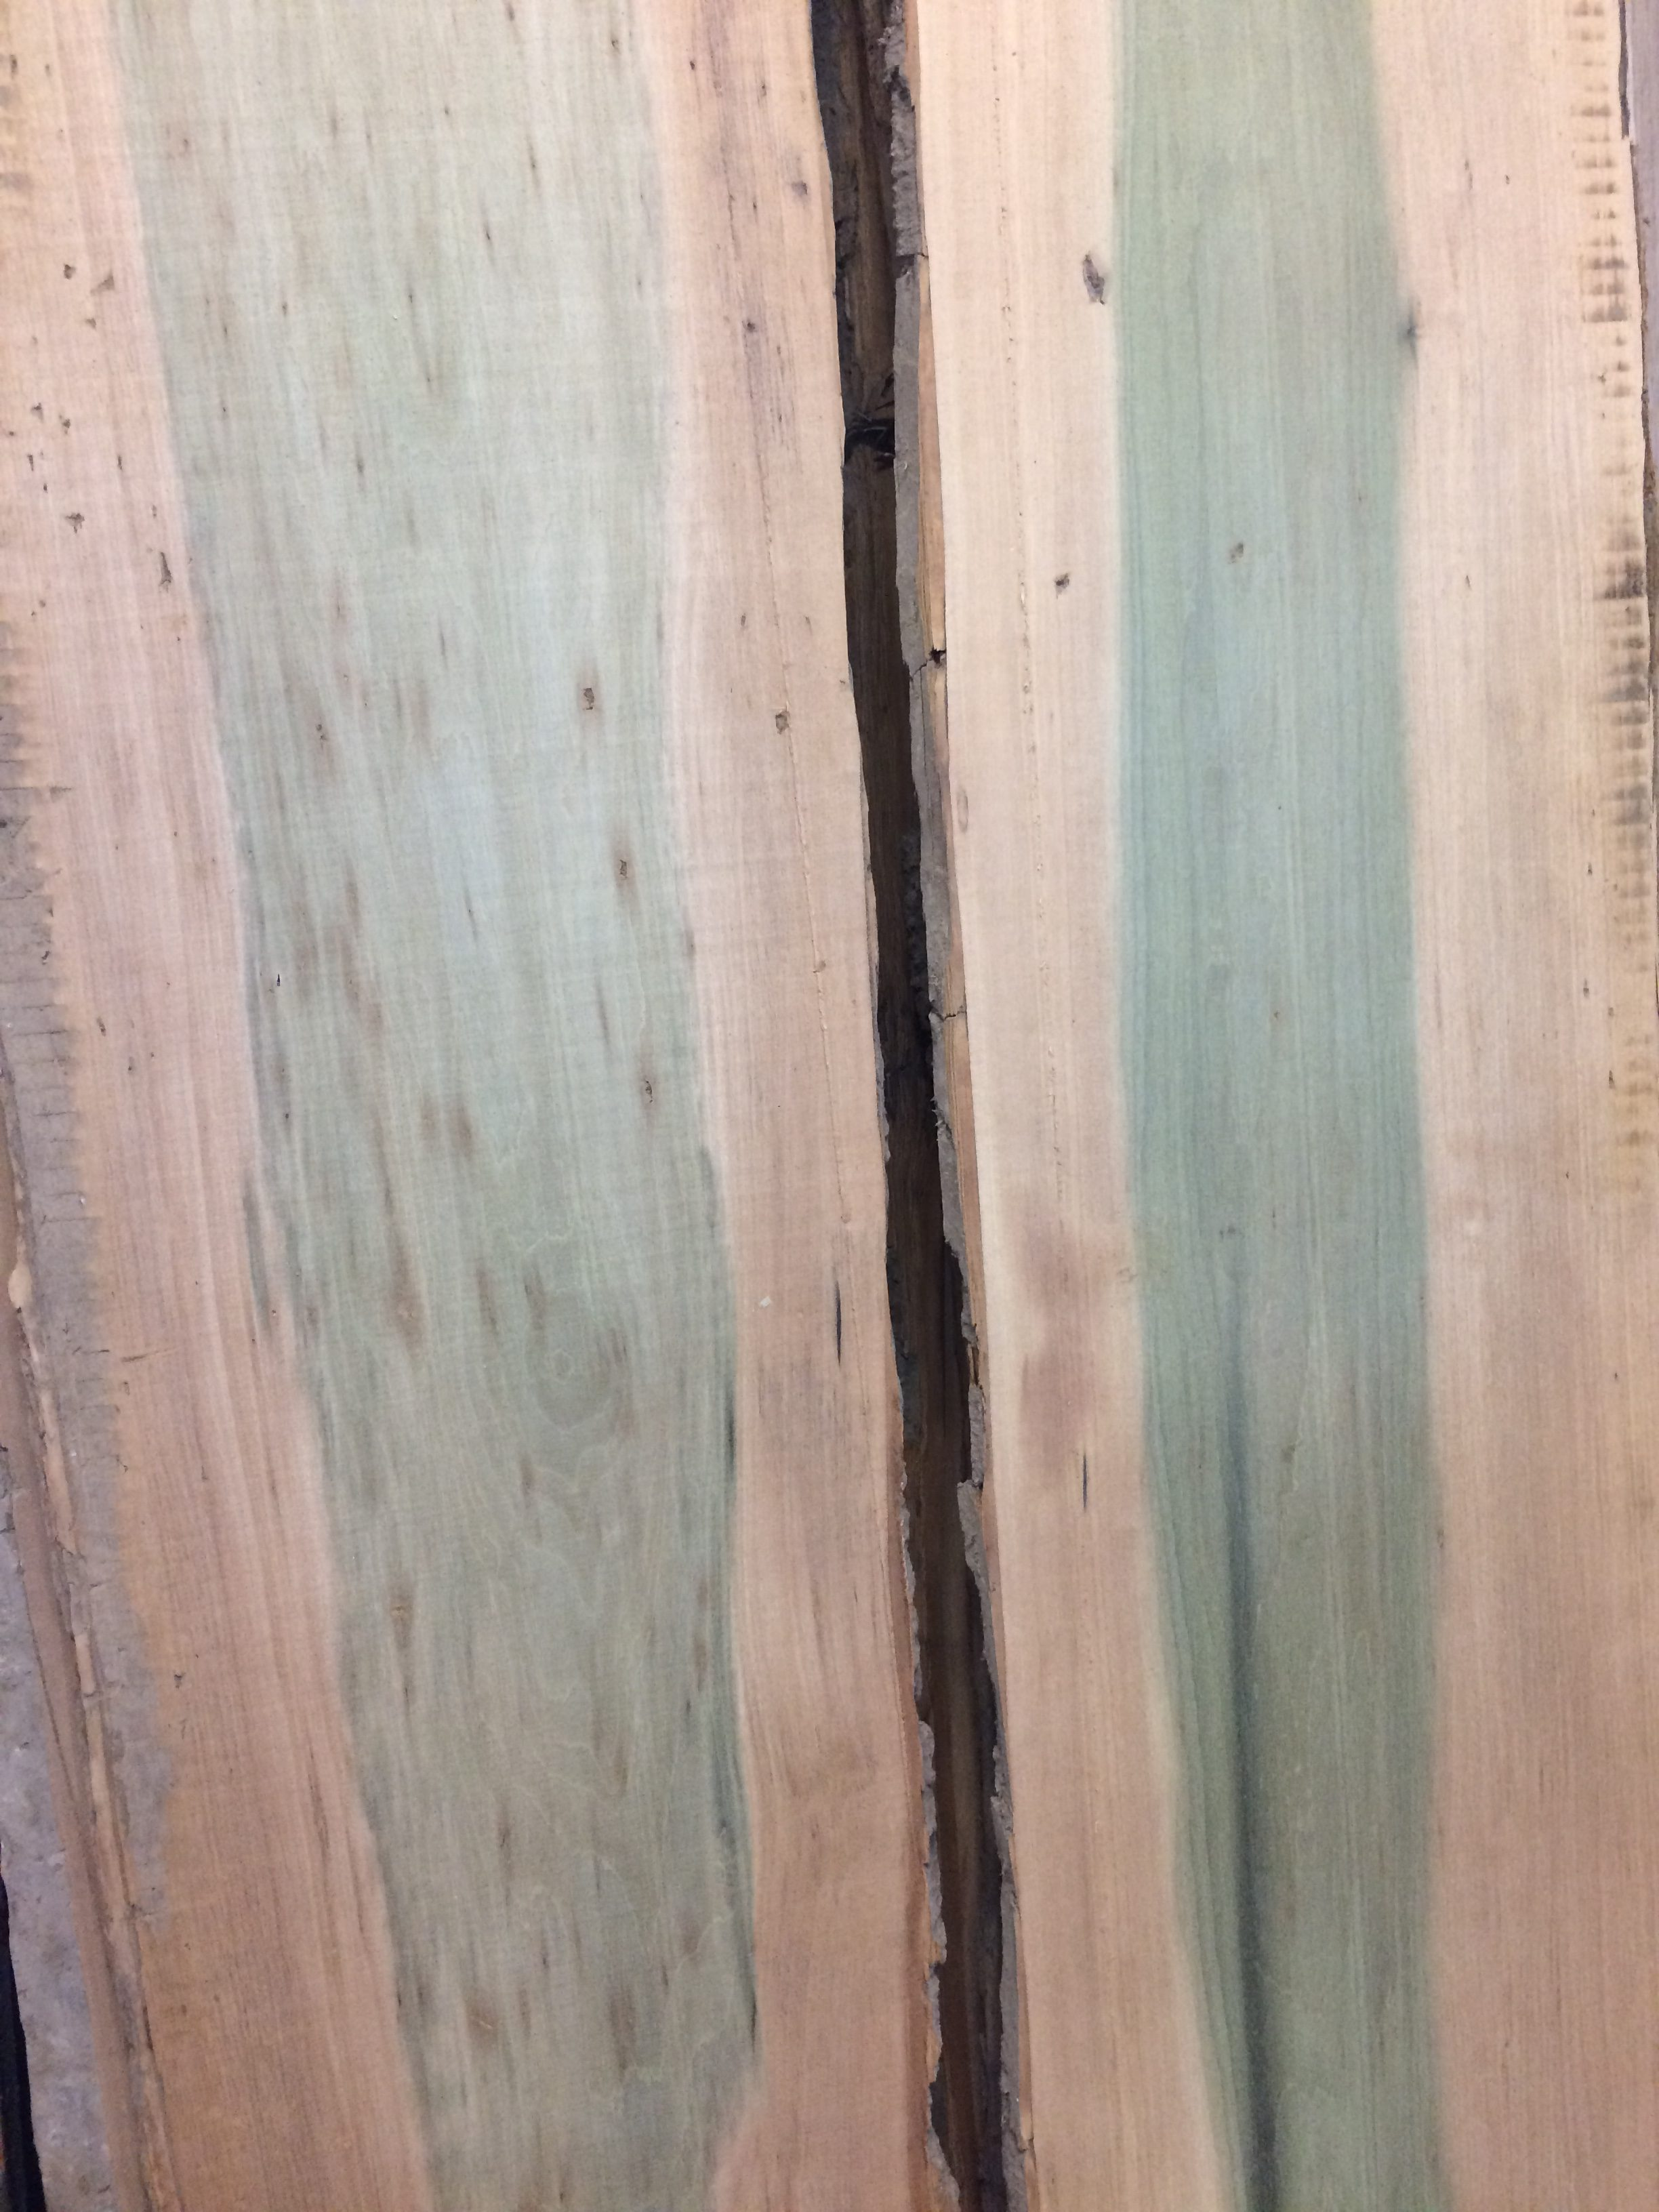 POPLAR - Poplar typically has a straight, uniform grain, with a medium texture. Low natural luster. Our poplar usually runs $6-$7 per board foot.